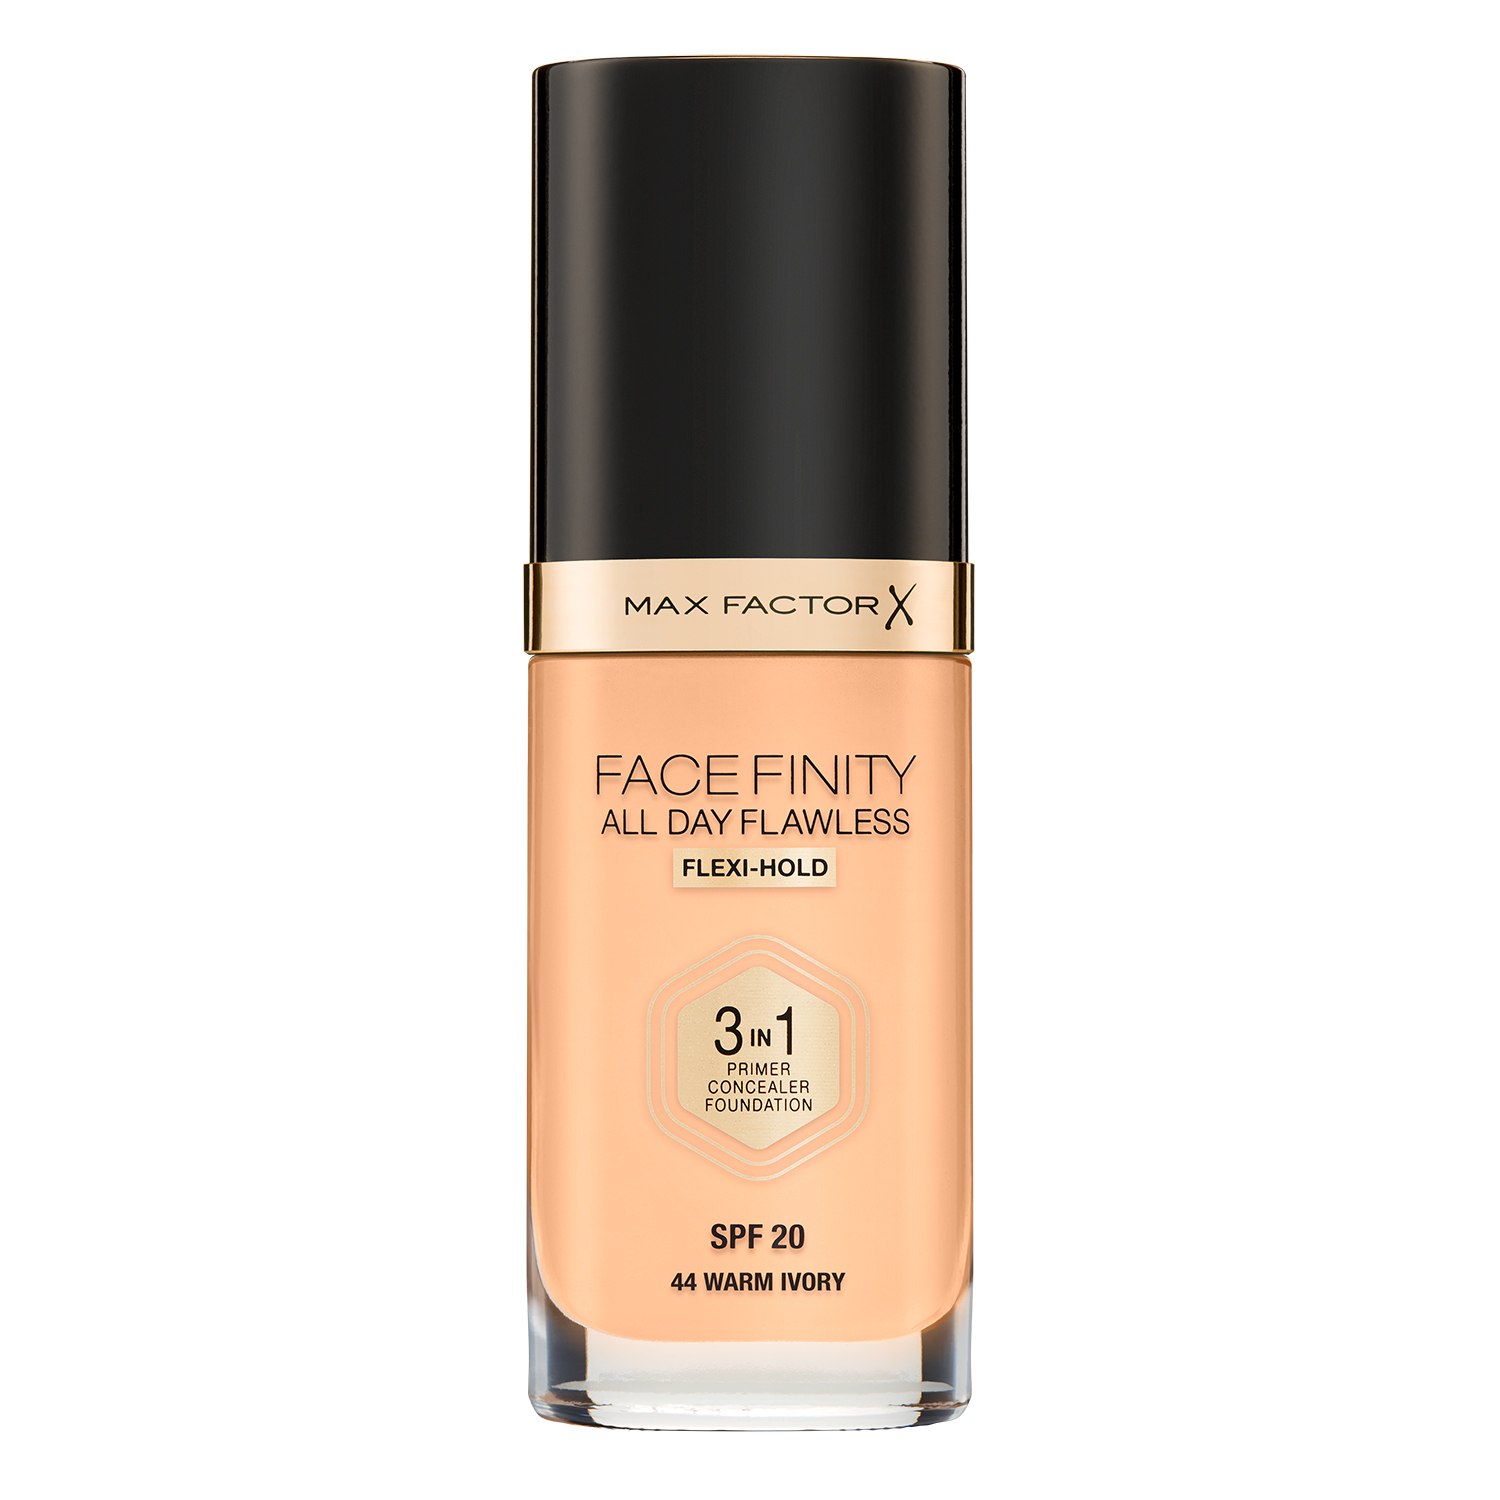 Тональная основа Max Factor Facefinity All Day Flawless 3-in-1, 44 тон warm ivory